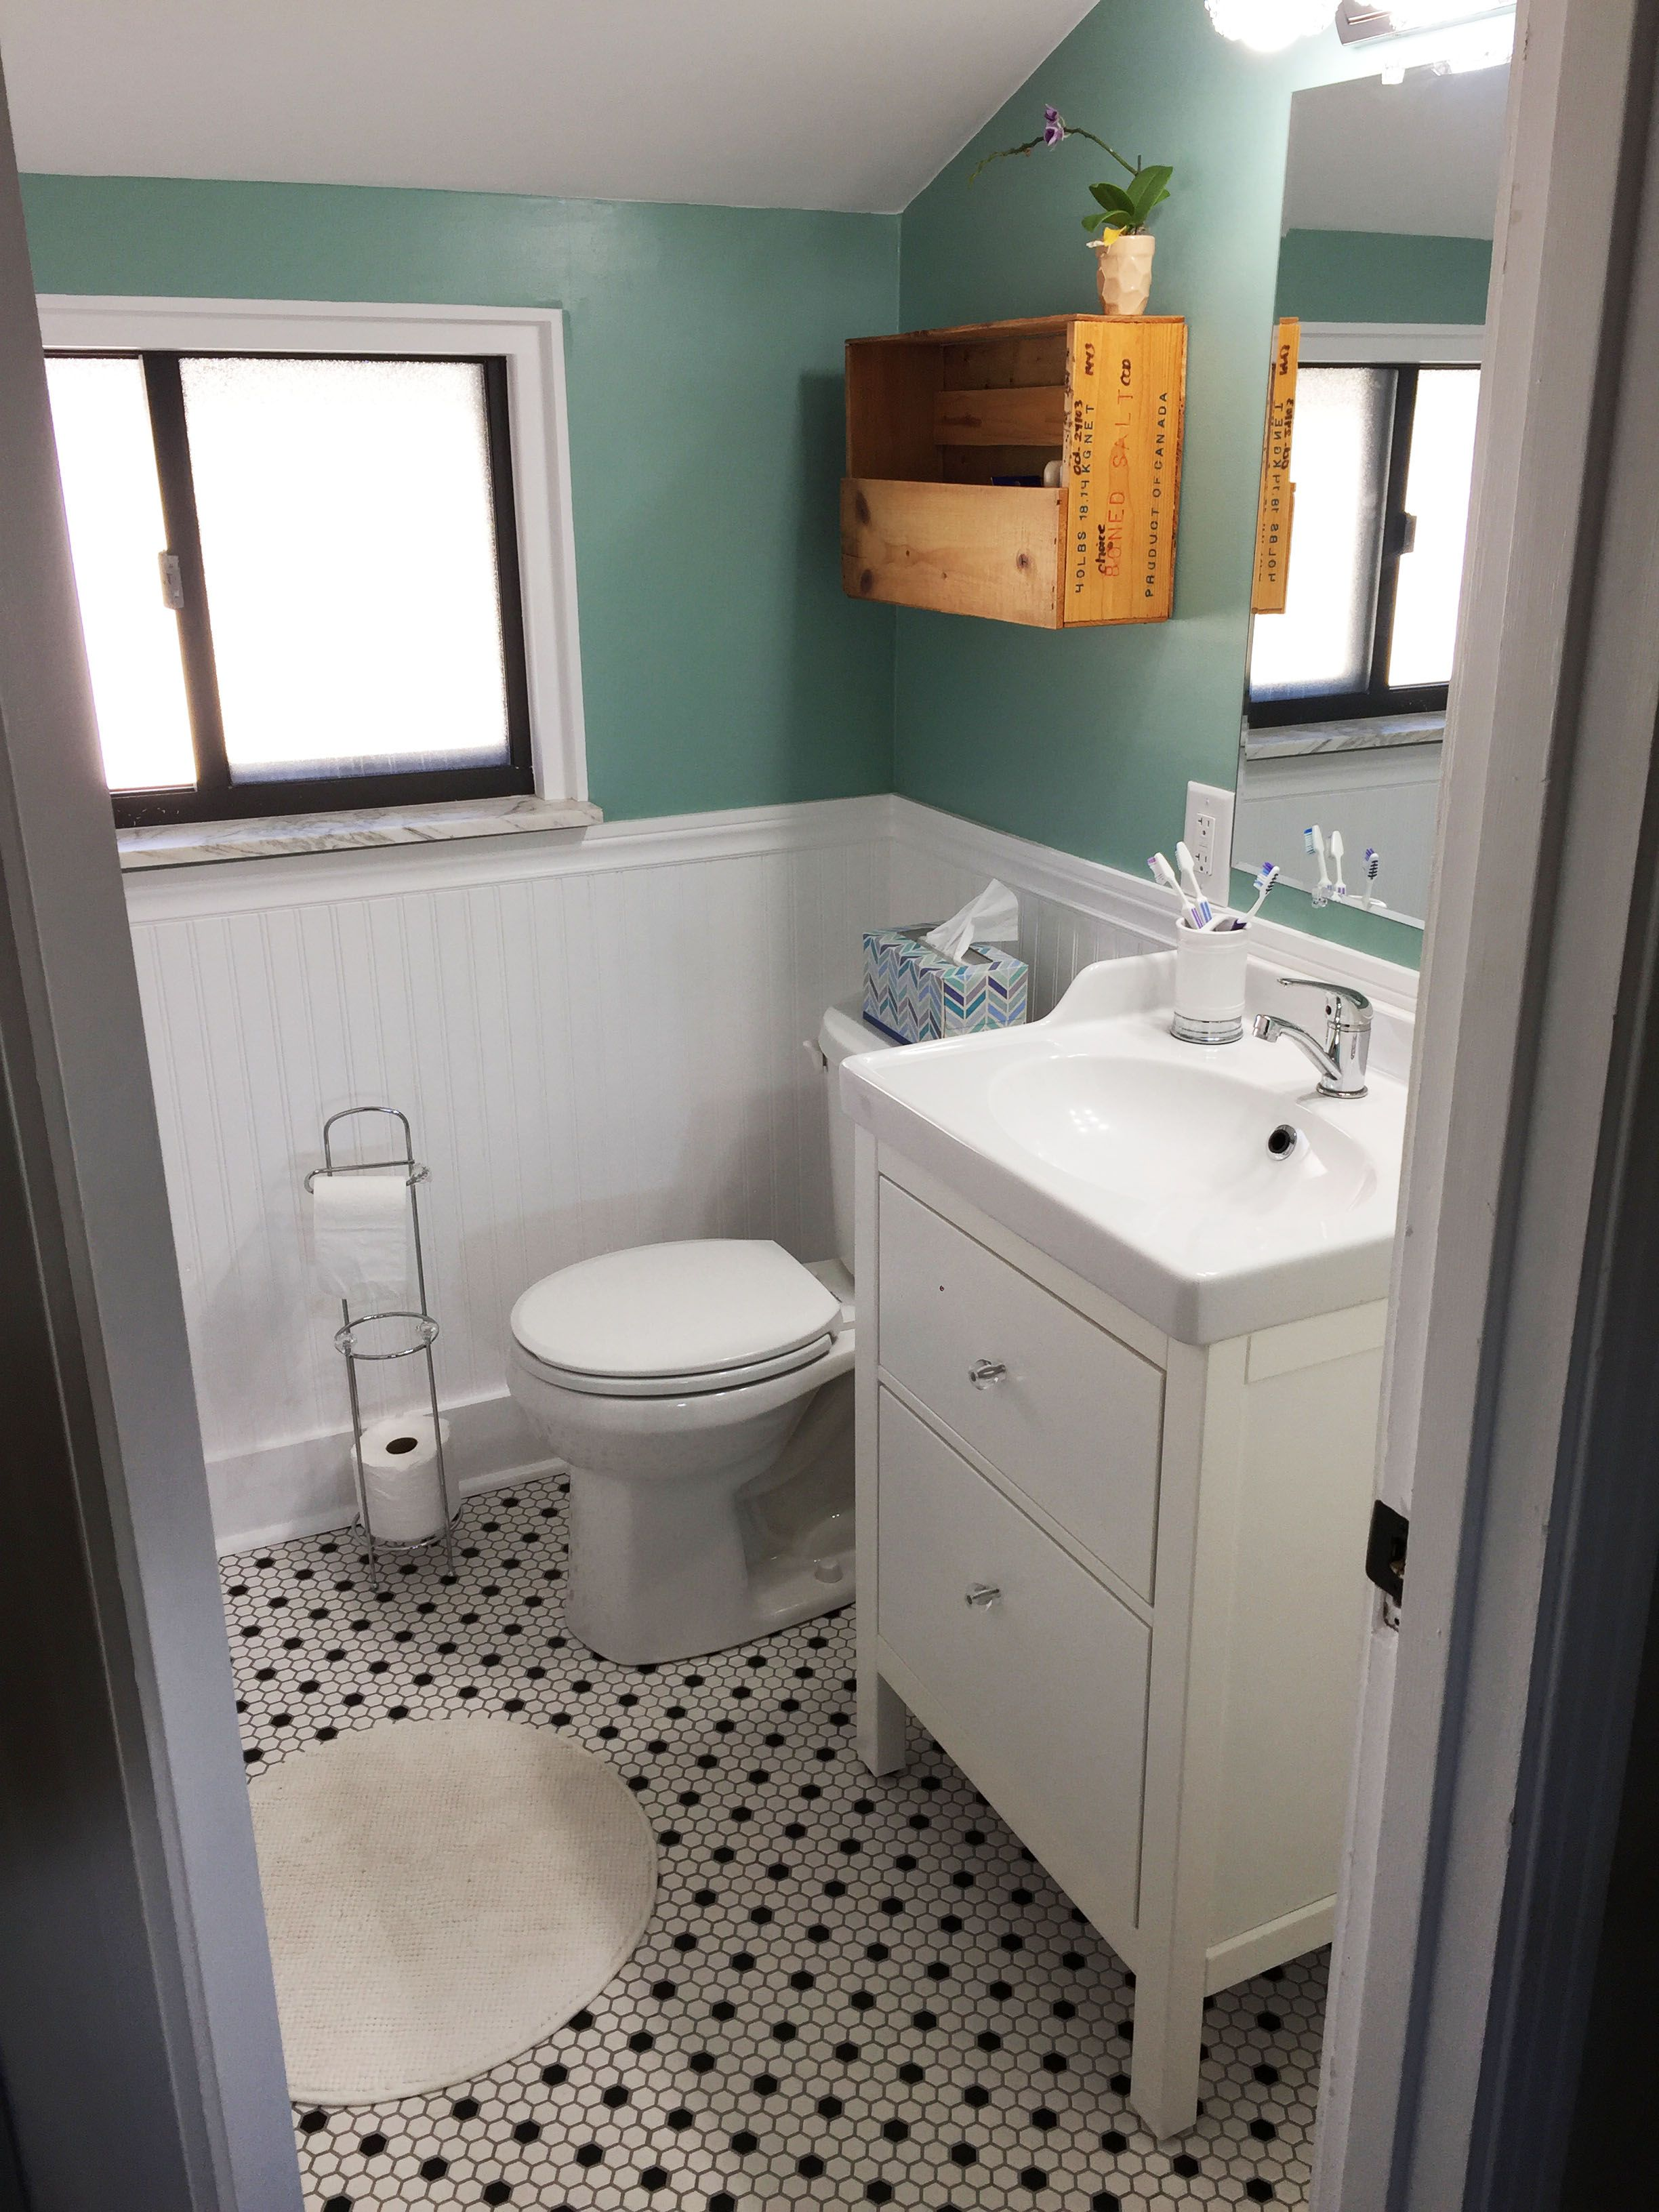 2000 Dollar Bathroom Remodel Before And After Before After